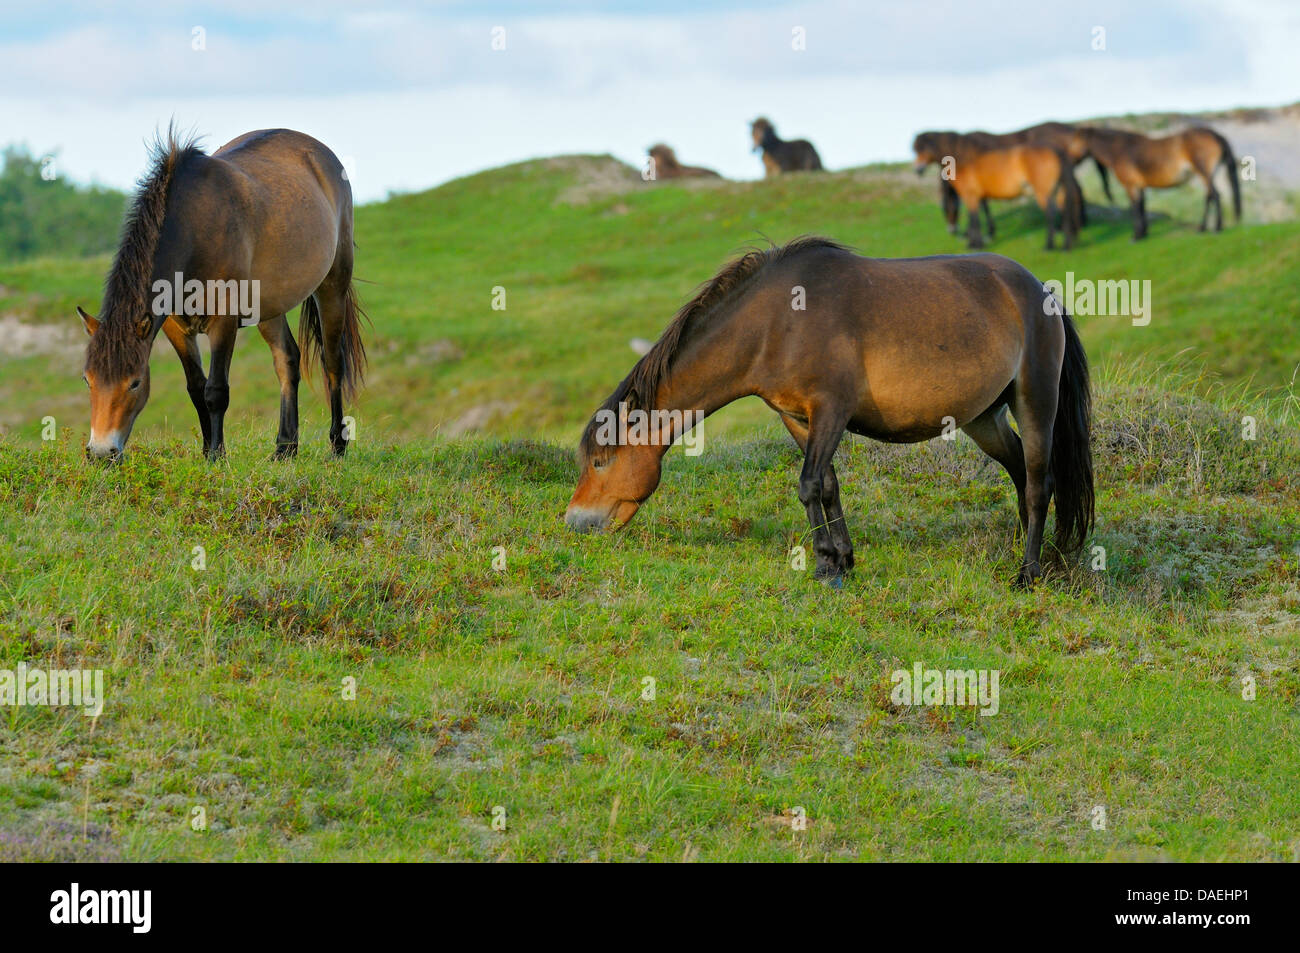 Exmoor pony (Equus przewalskii f. caballus), grazing herd of horses in the conservation area Bollekamer, Netherlands, - Stock Image